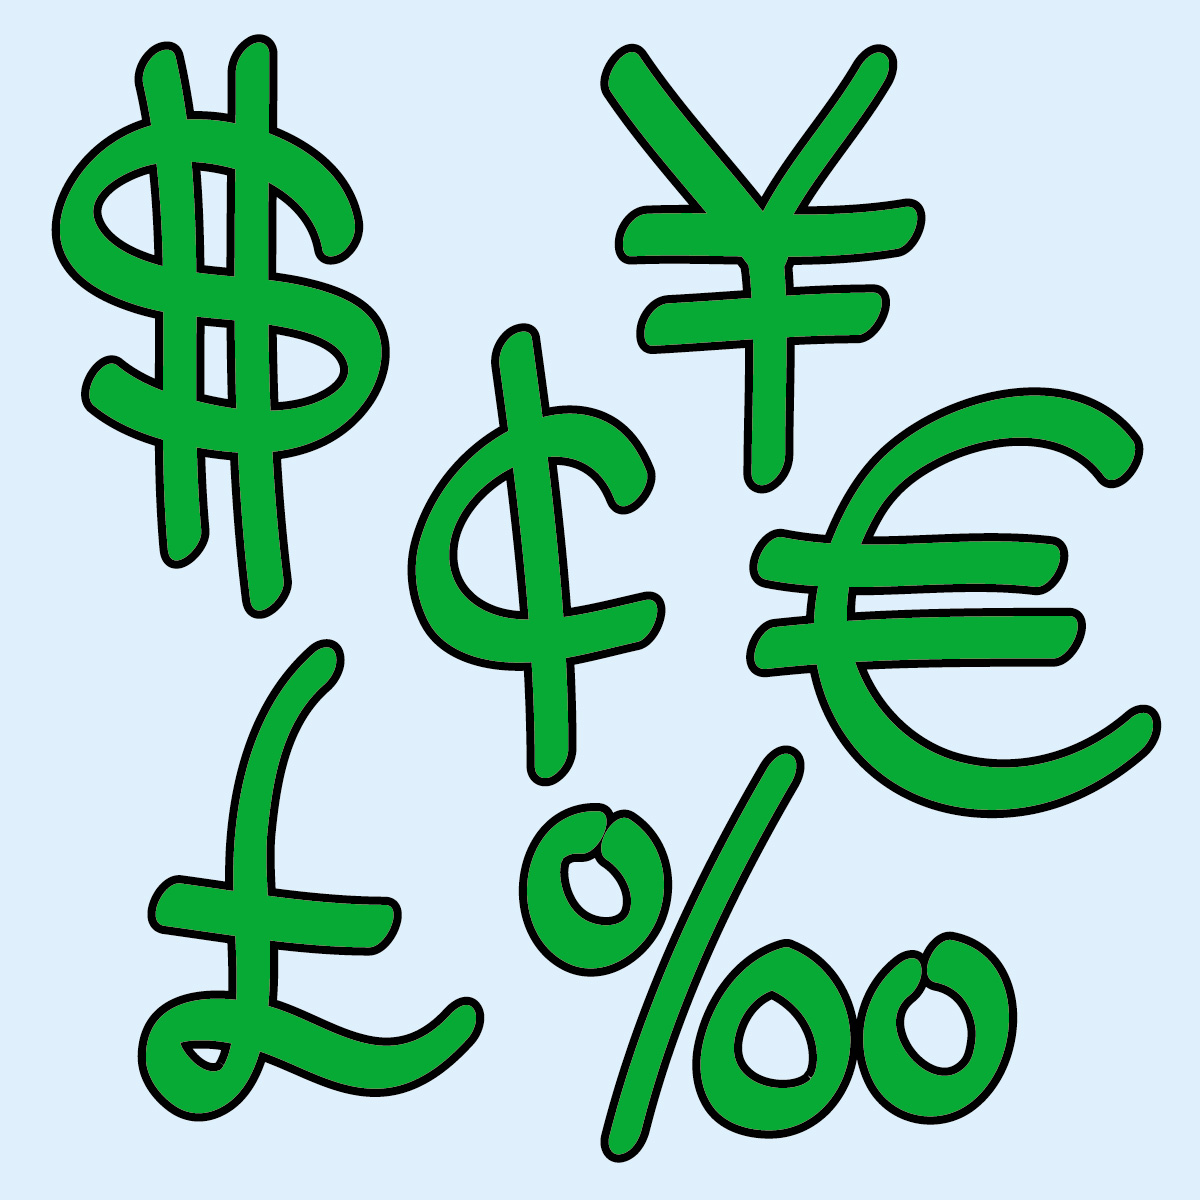 Cash clipart currency Free Clip Art Art